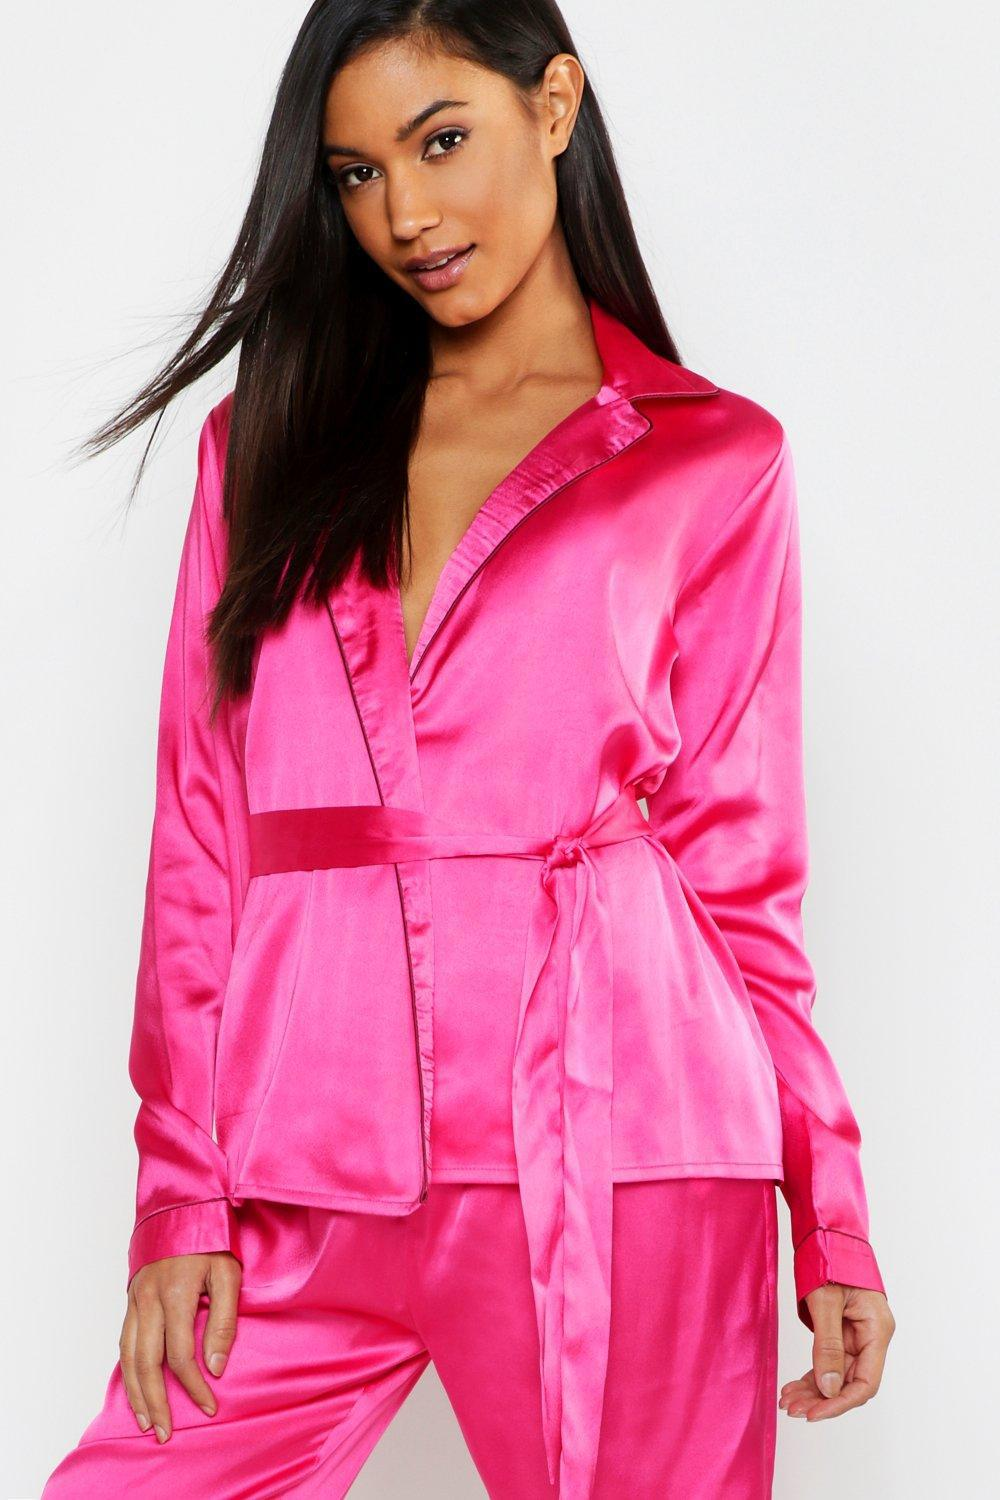 ee15dc40a79 Lyst - Boohoo Wrap Front Belted Pj Set in Pink